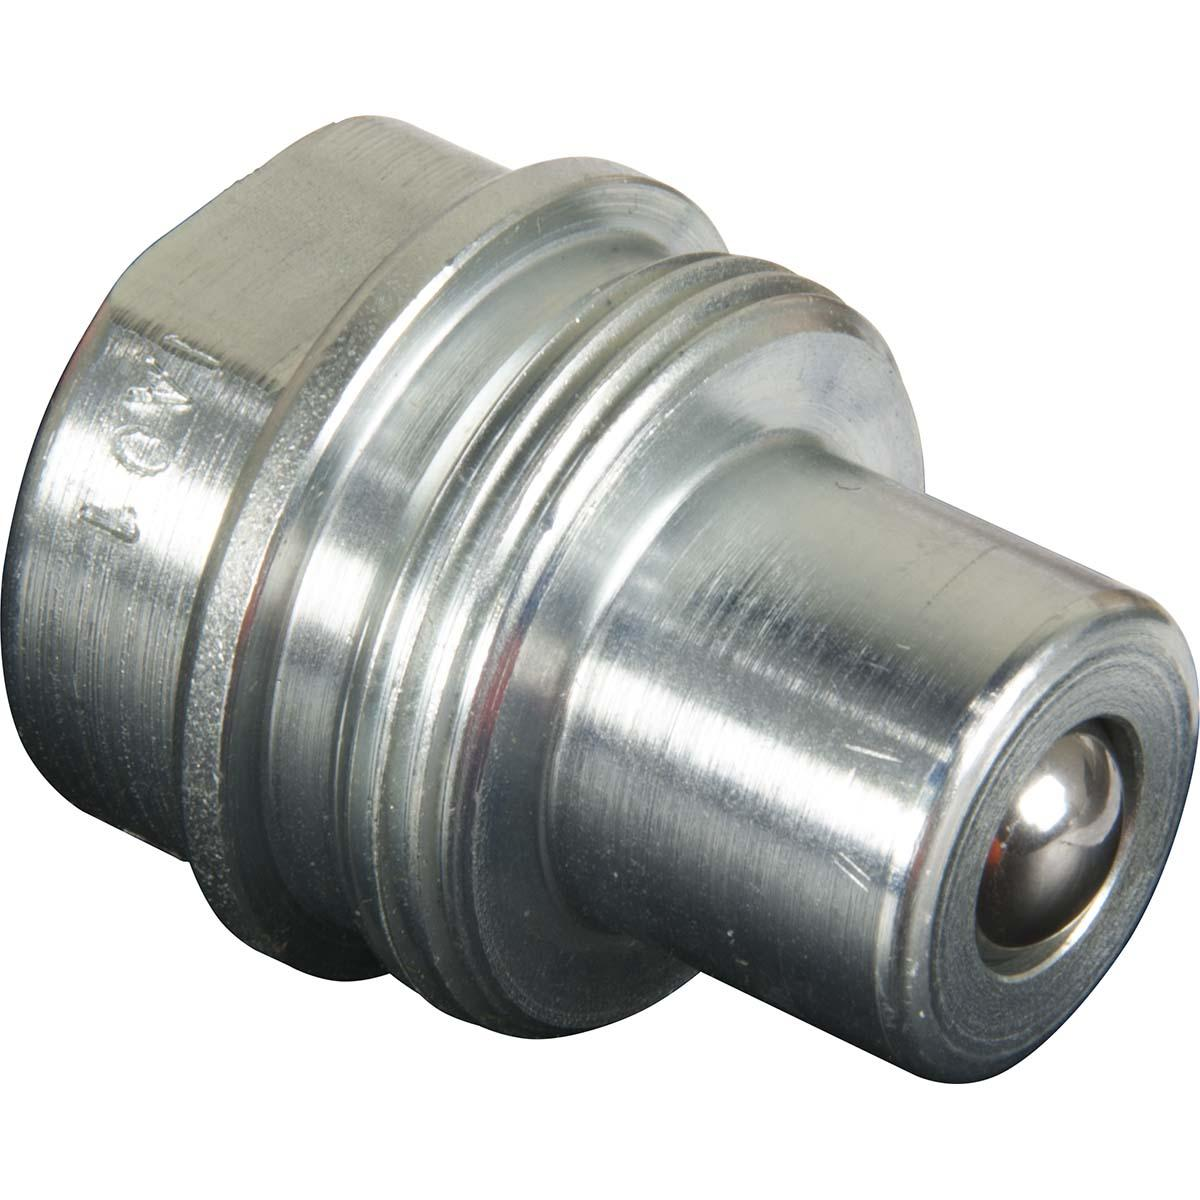 Hose Coupler Half With Dust Cap